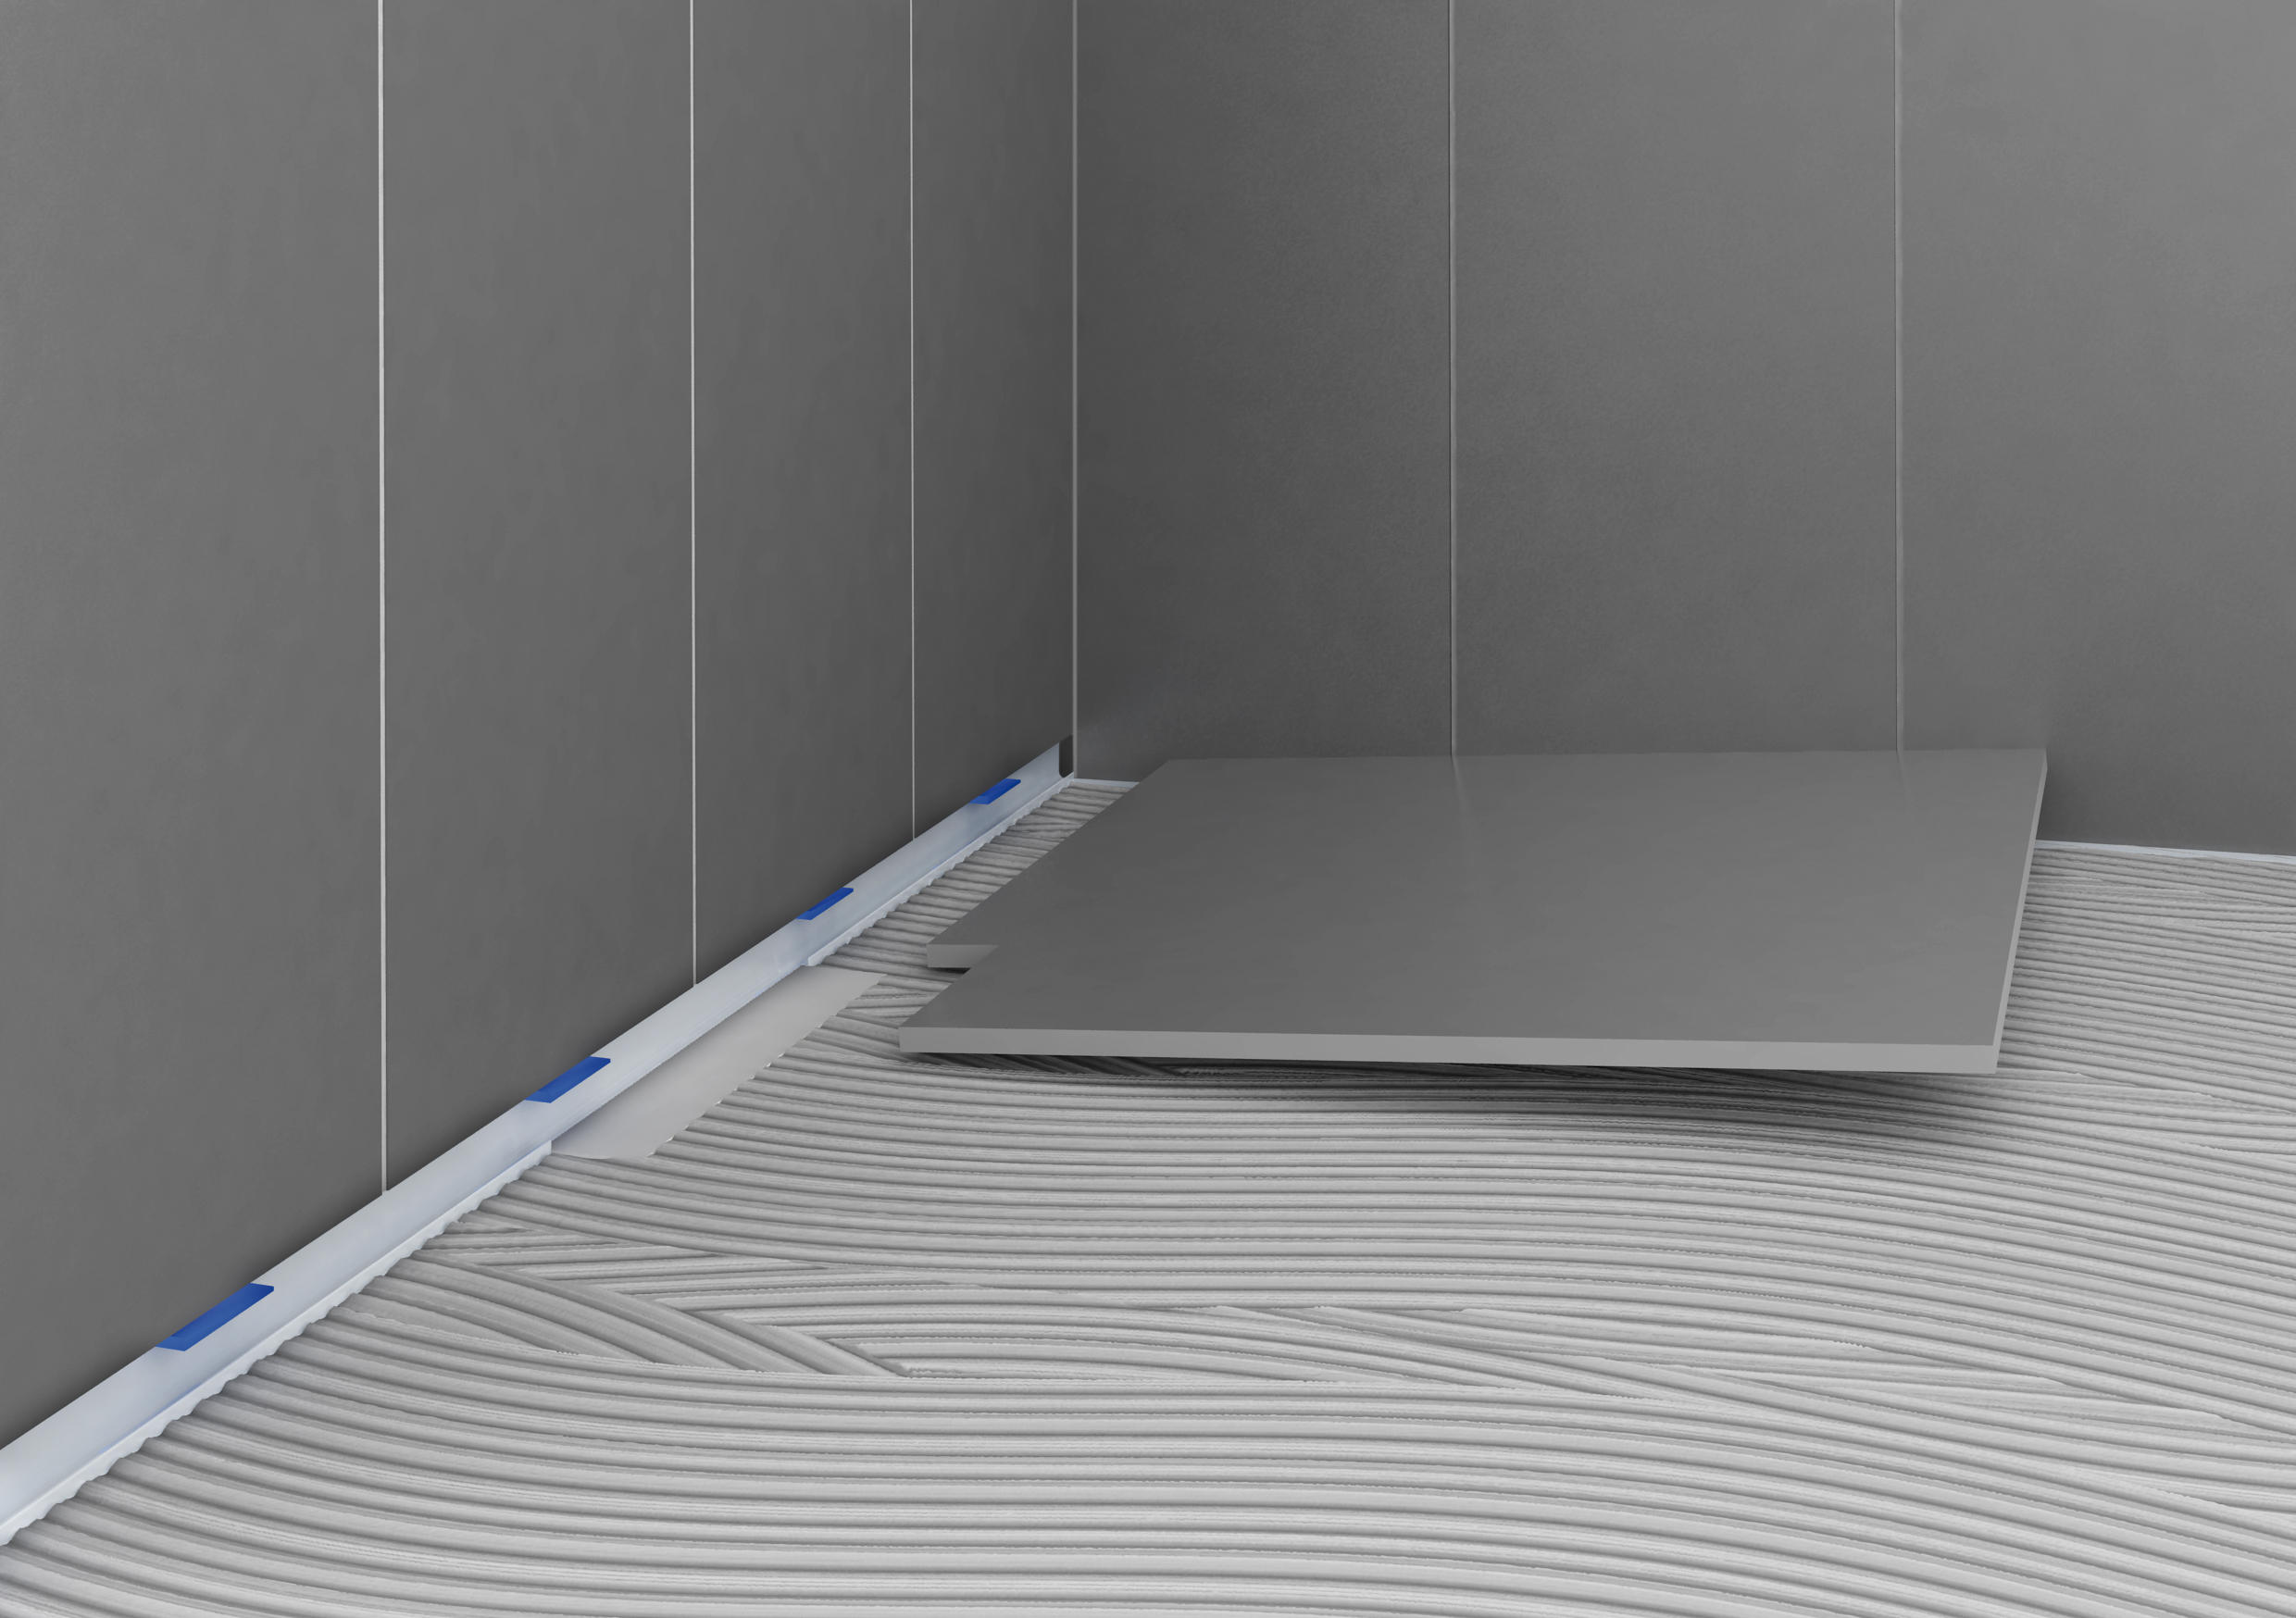 Duschrinne Dallmer Cerawall Select Cerawall Individual Plate Drains From Dallmer Architonic